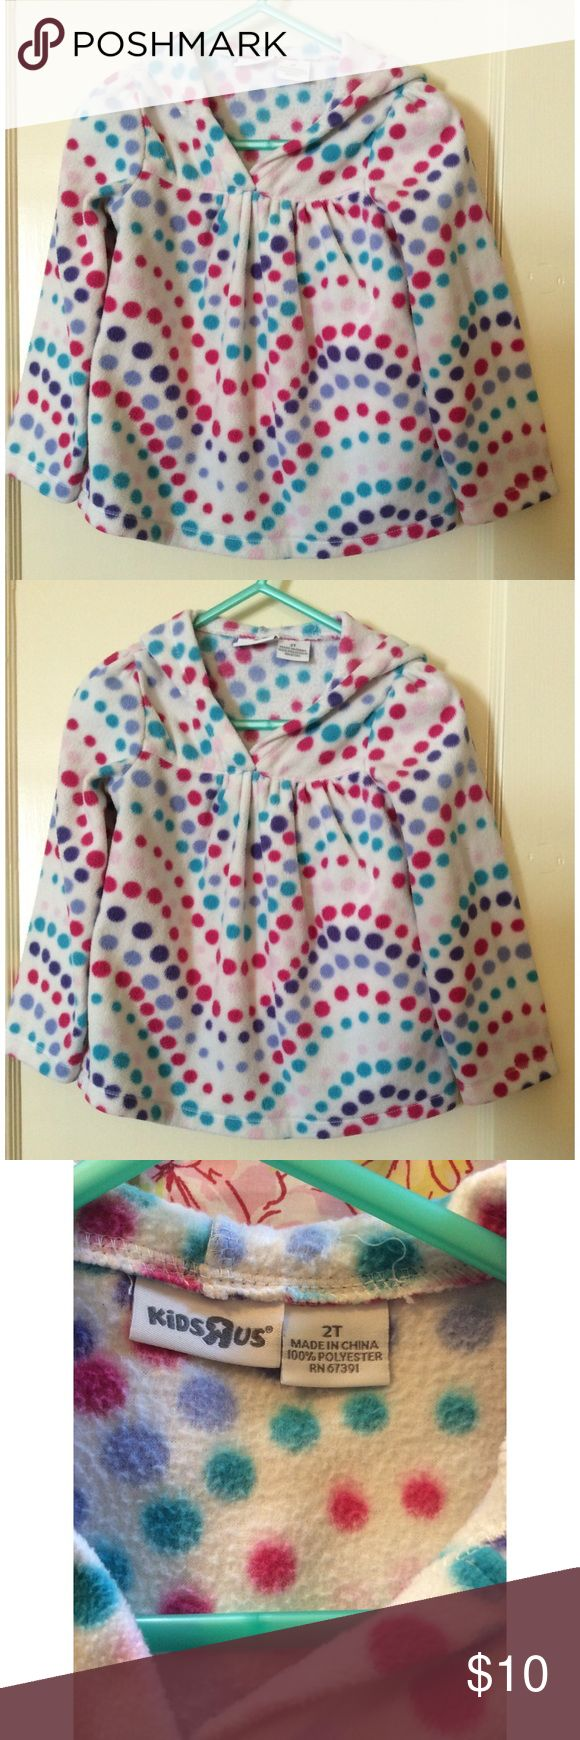 Kids R Us Polka Dot Pullover Kids R Us polka dot pullover. 2T. Kids R Us Shirts & Tops Sweatshirts & Hoodies